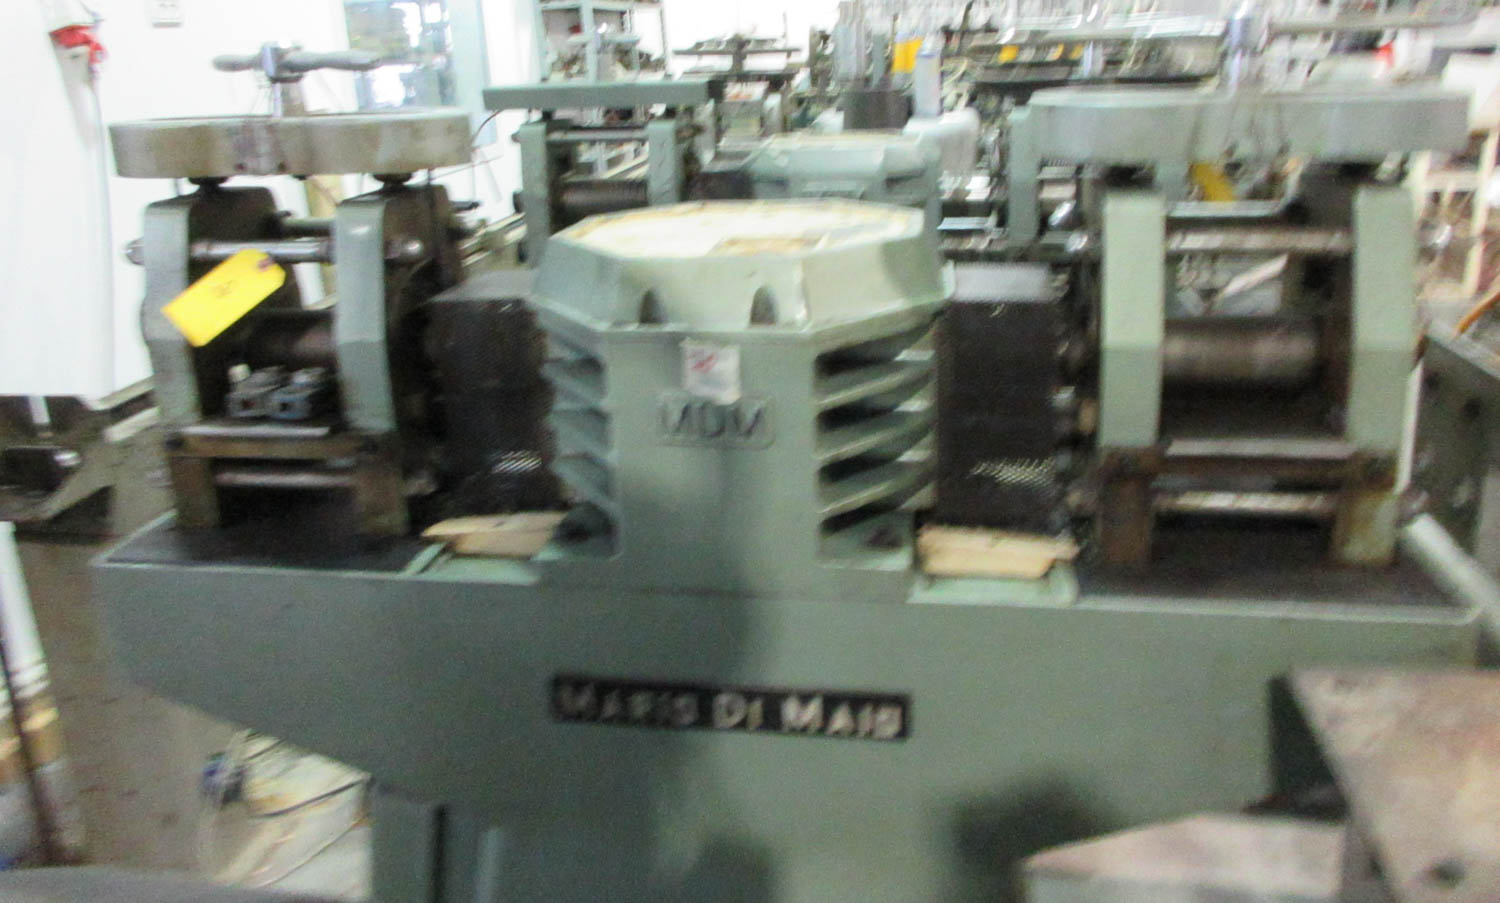 MARIO DI MAIO MDL. GLY60 AMBIL DOUBLE ROLLING MILL FOR PLATE AND WIRE REDUCTION; DOUBLE-SIDED PRESS;